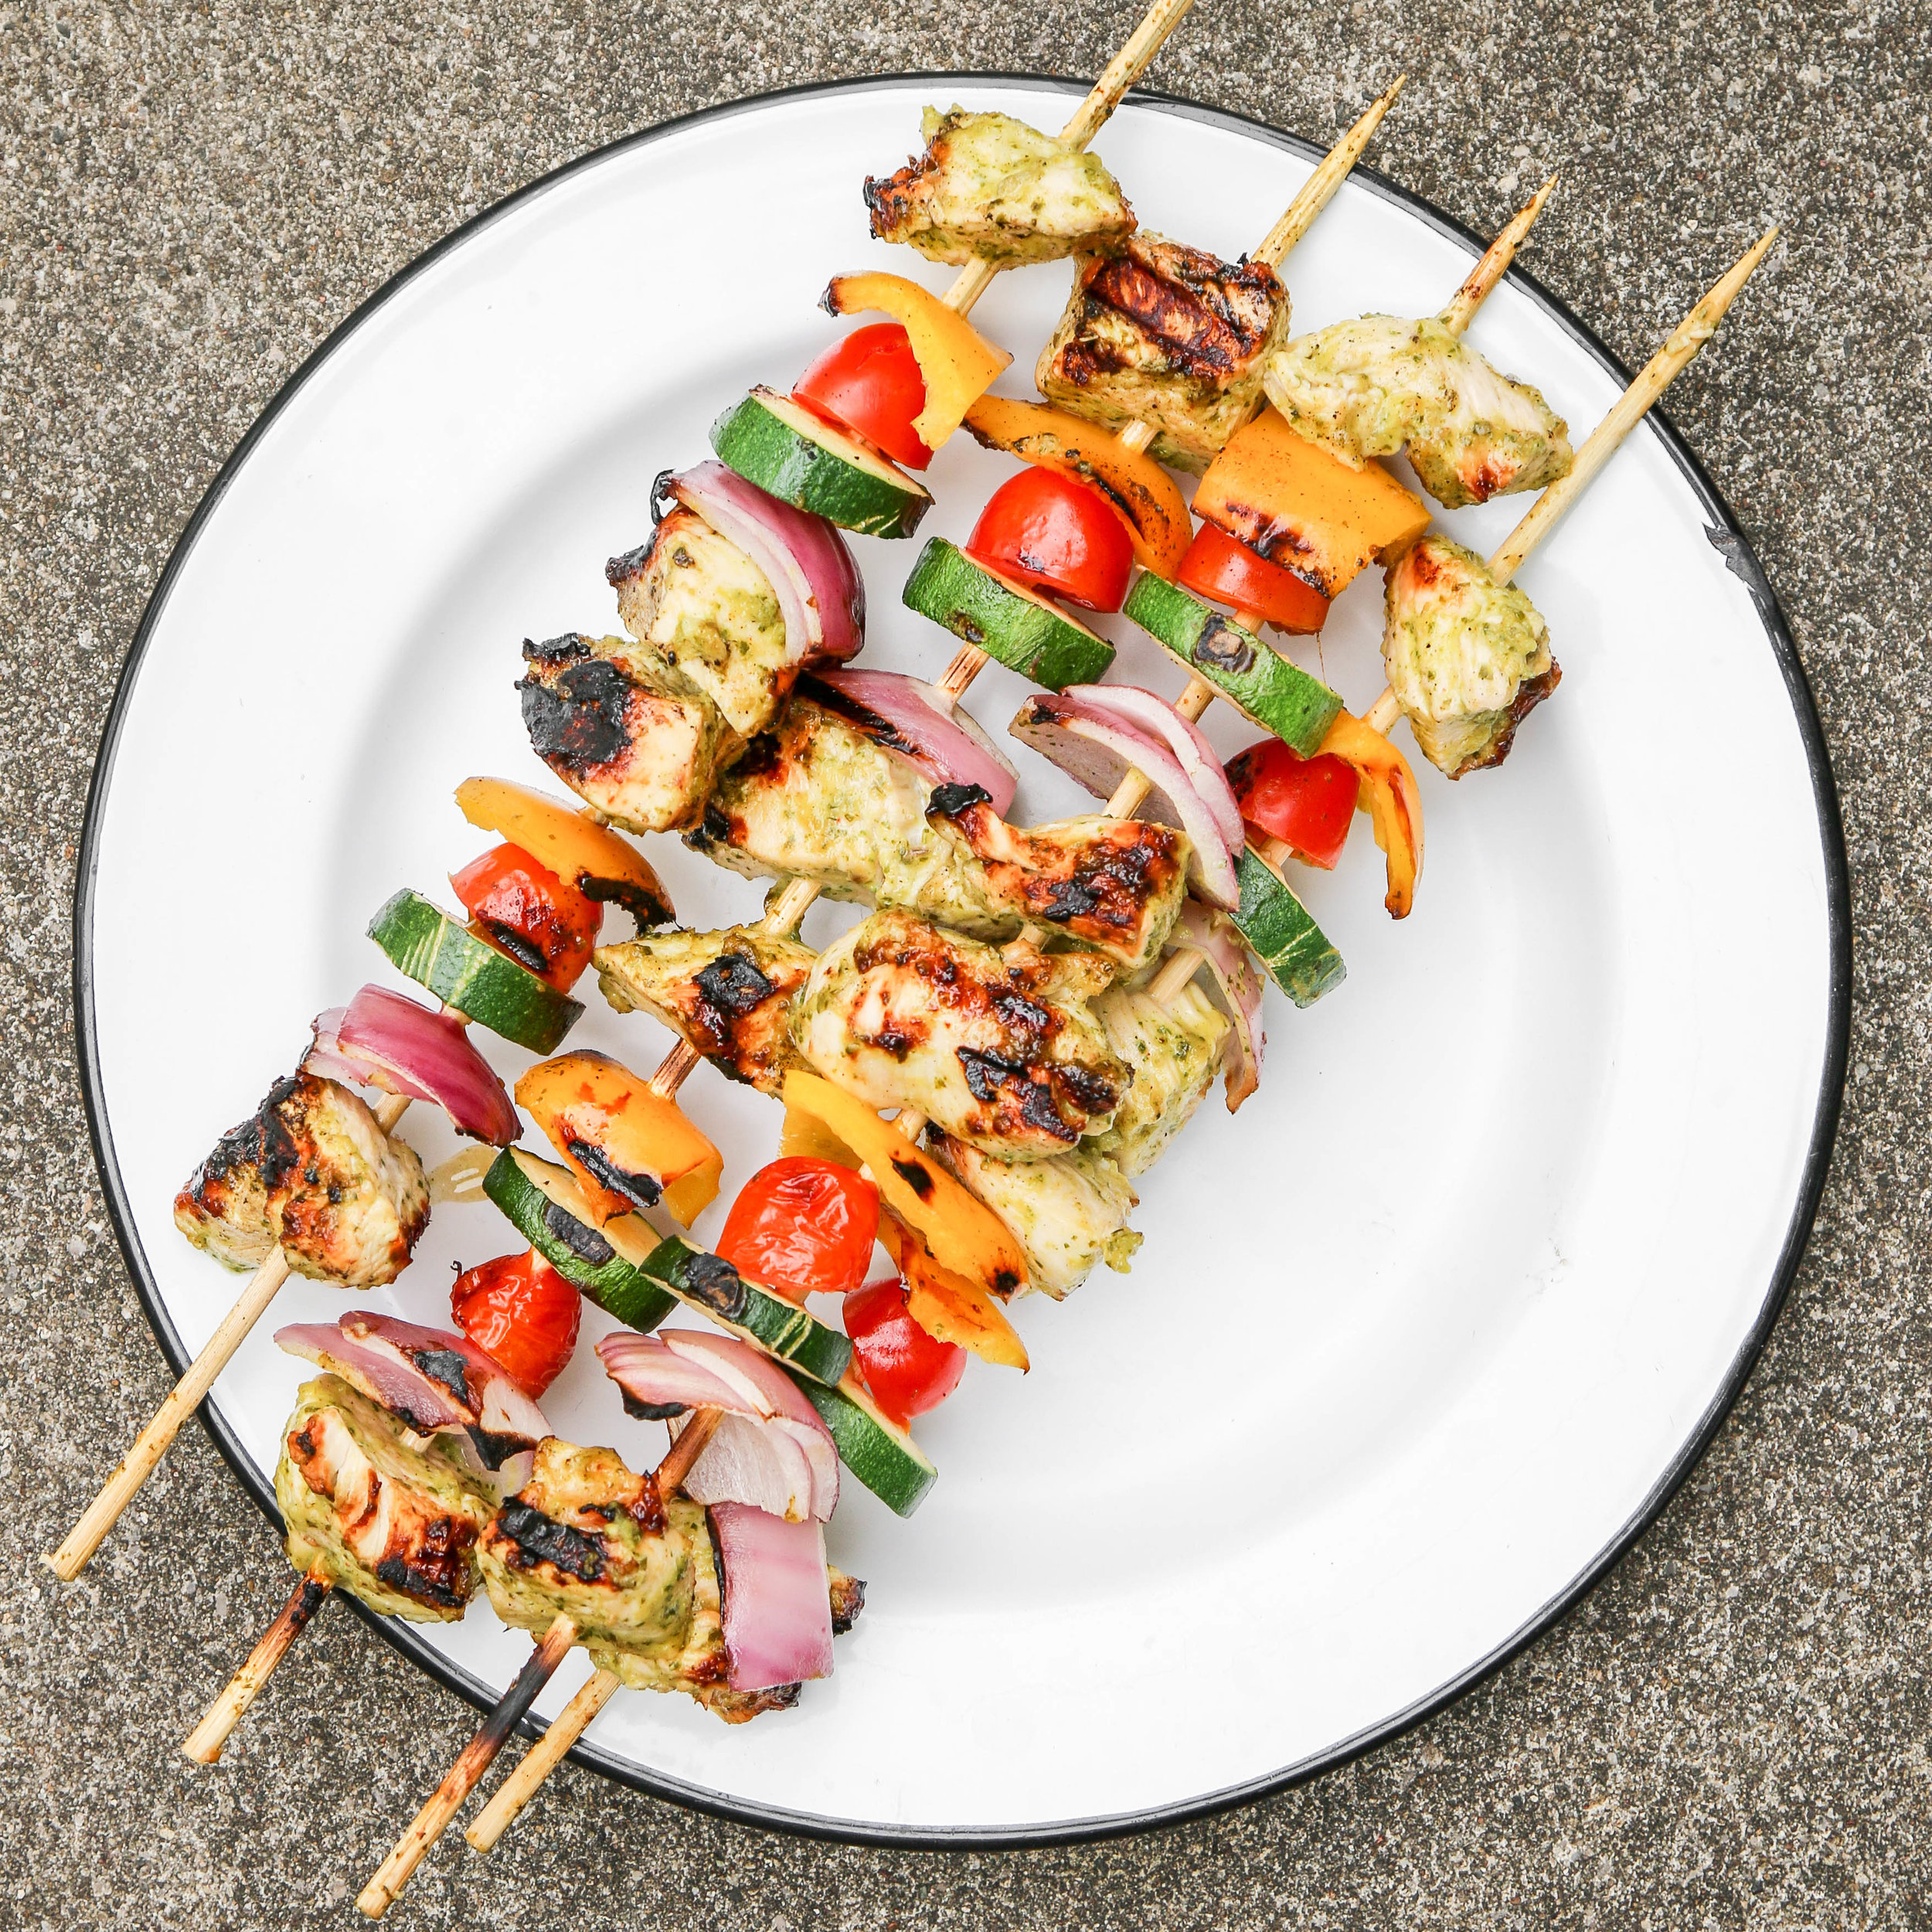 How long do i grill chicken skewers - Orange Cilantro Grilled Chicken Skewers